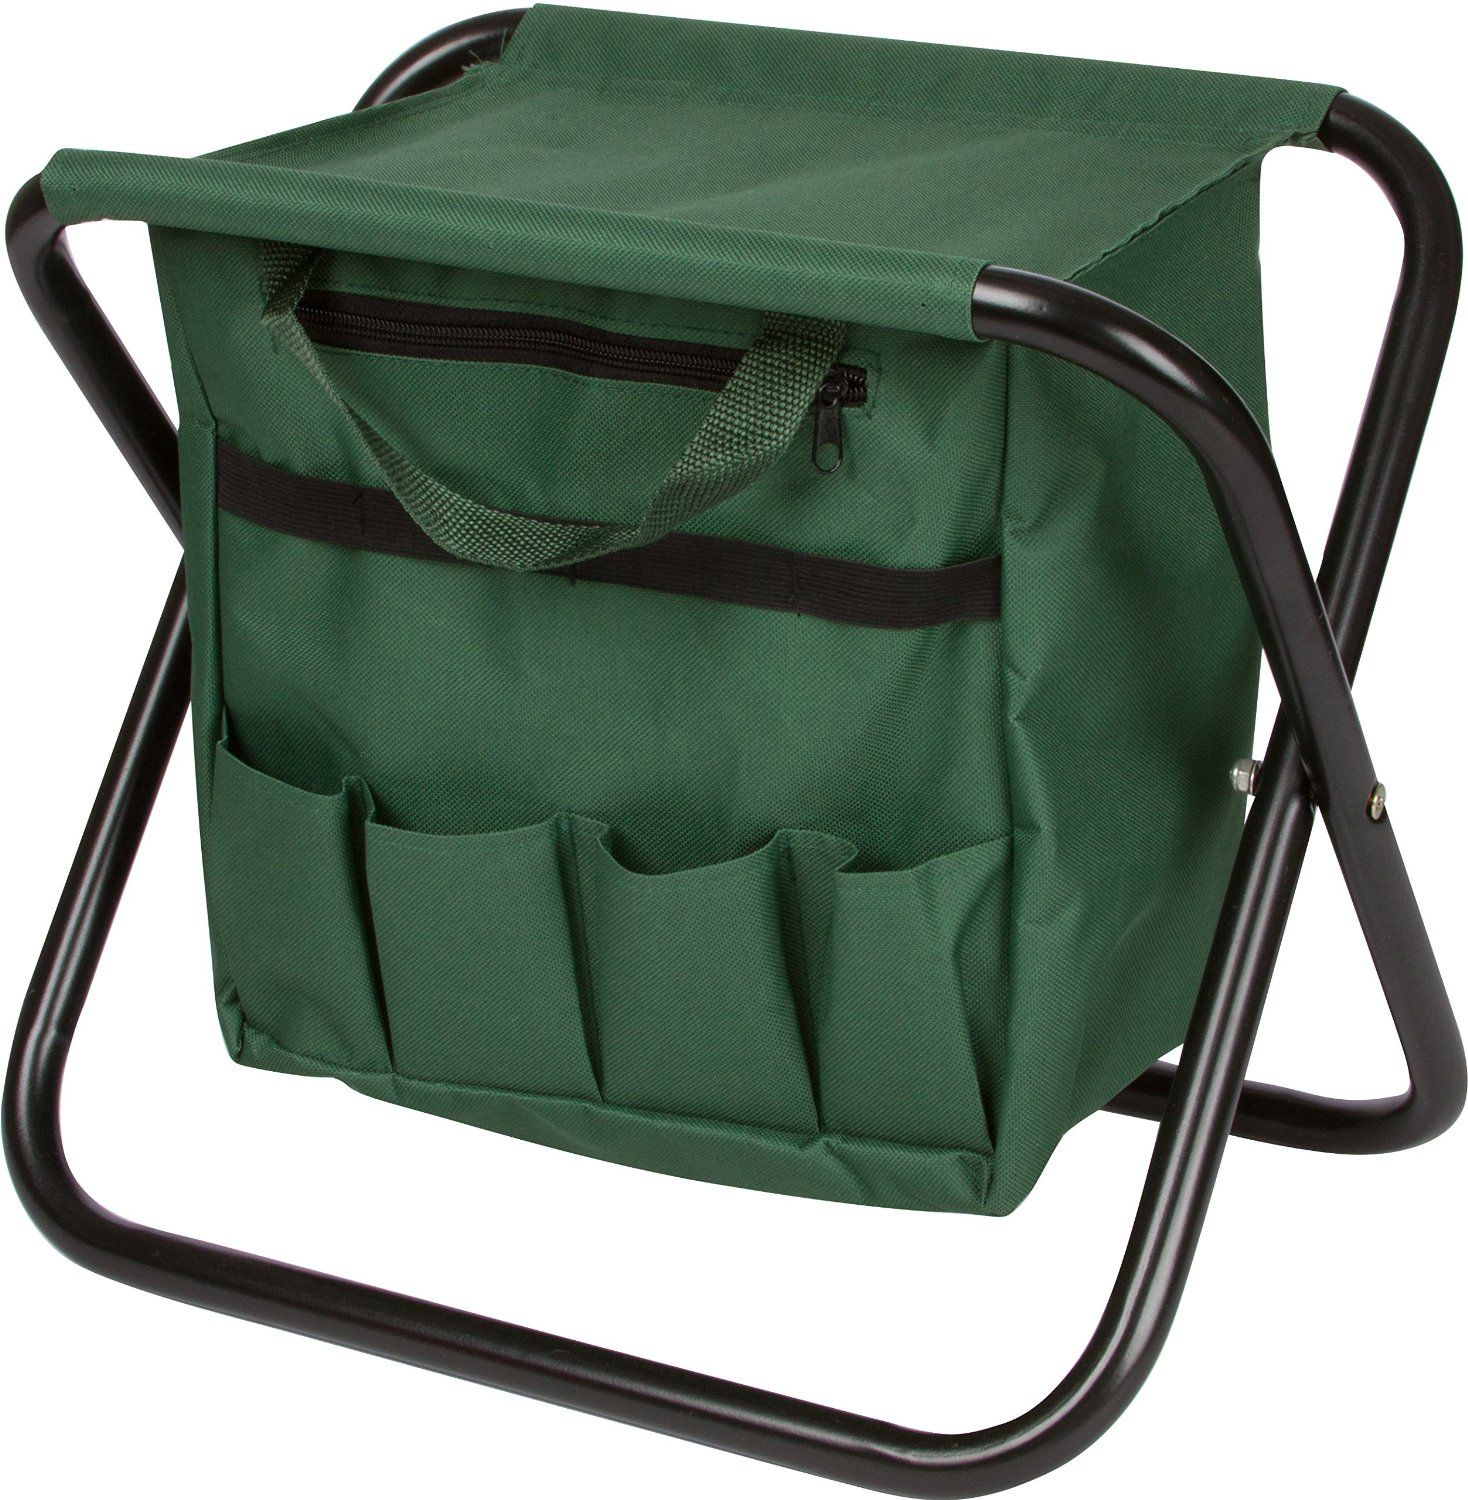 equipment bag garden and gardening stool storage gardeners folding with tools